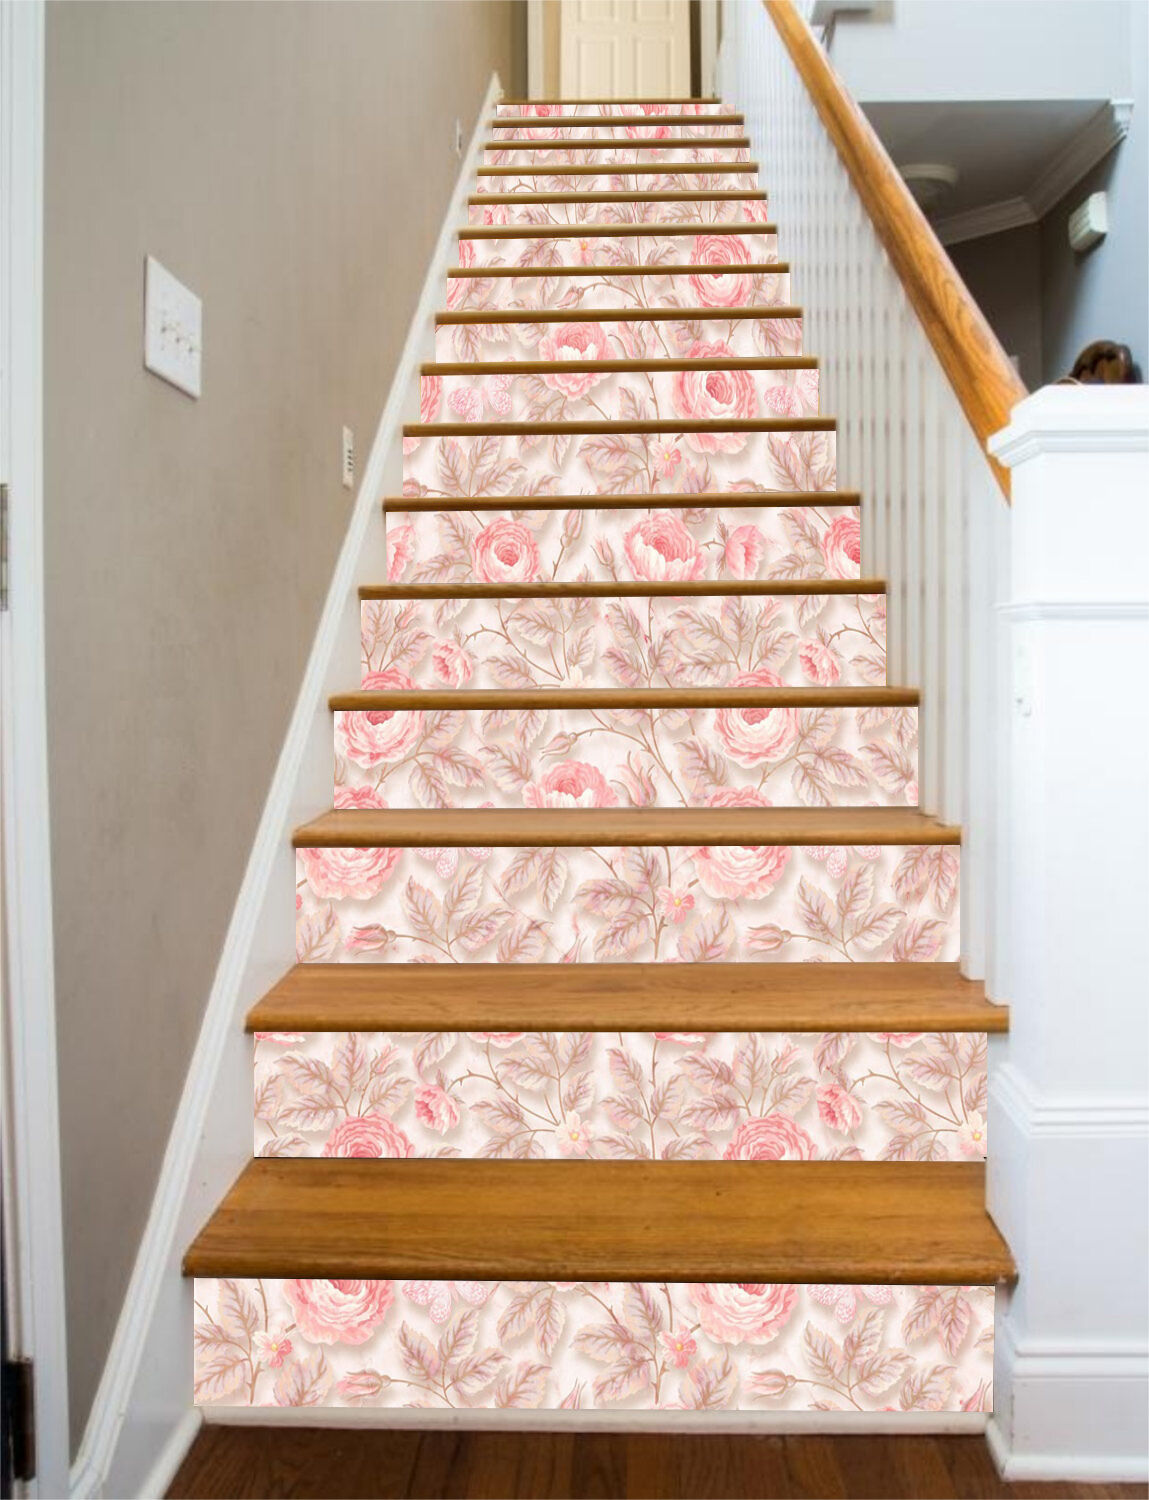 3D rose Pattern Stair Risers Decoration Photo Mural Vinyl Decal Wallpaper CA